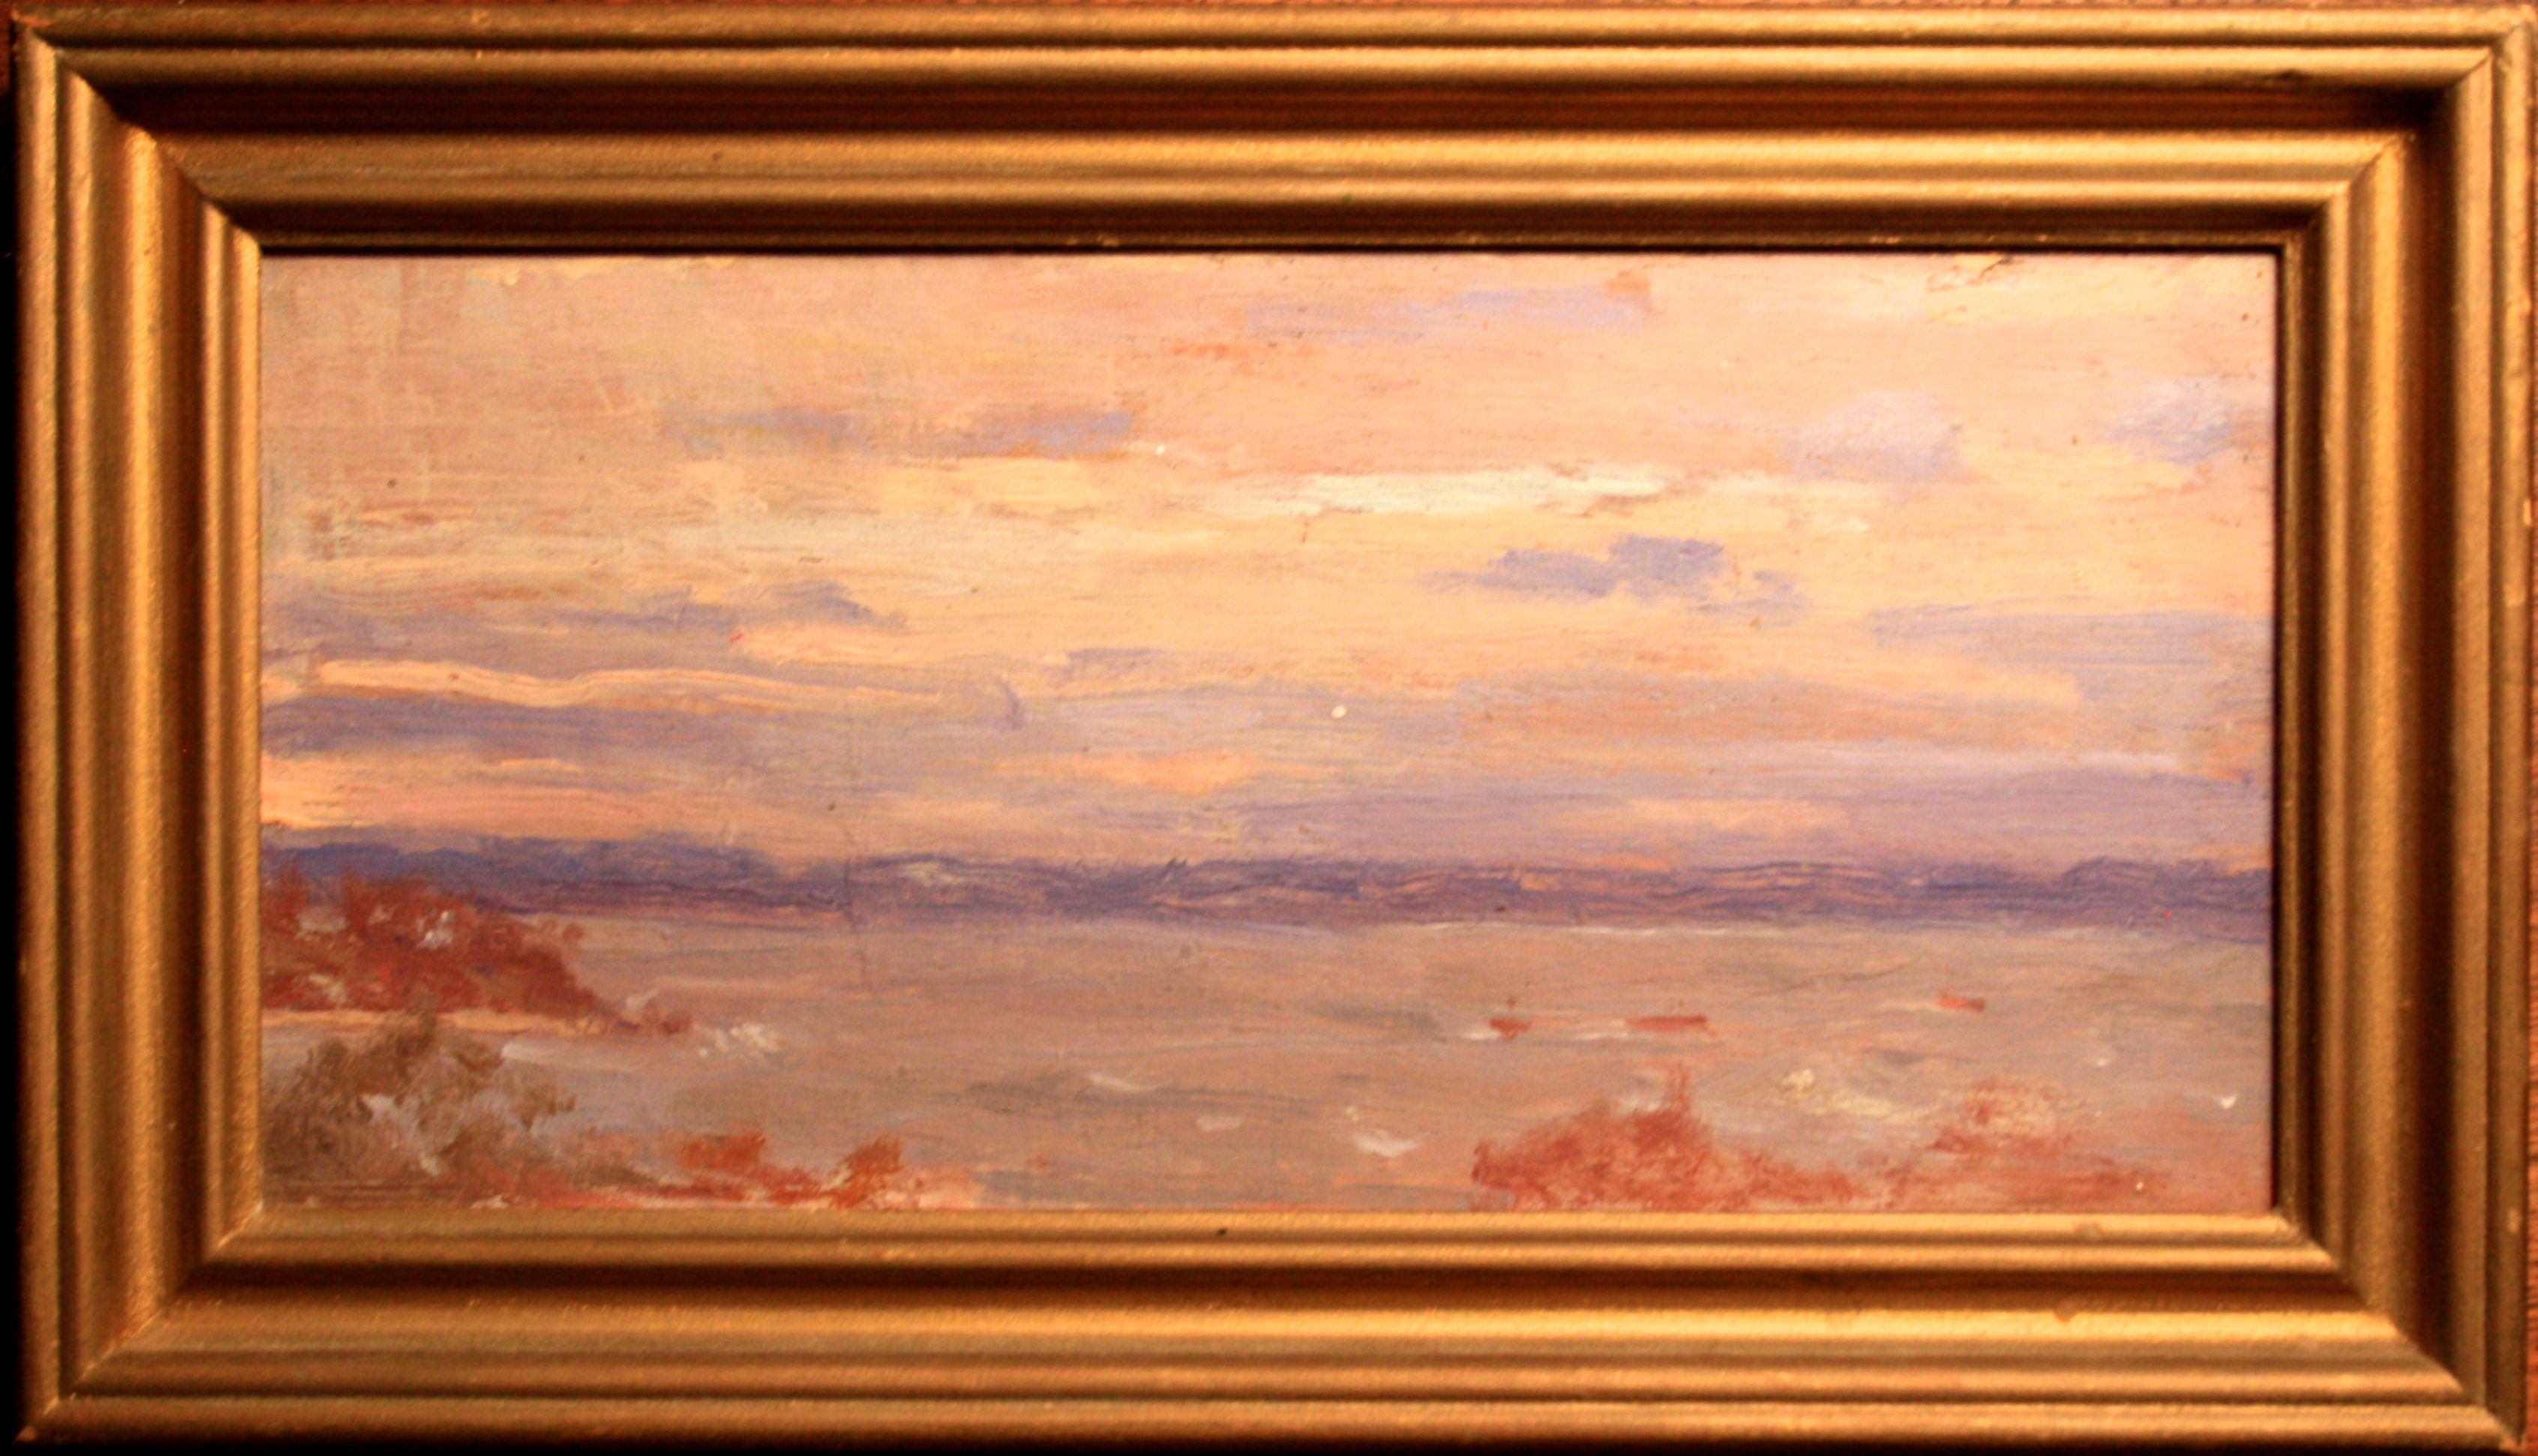 Emma Eilers' Oil on mahogany. Painting purchased in a Roslyn, NY antique store. Sea Cliff Beach. Private Collection of IP. Dated 1909 in pencil on the back of the painting. Emma Eilers 1940's is pencilled on the brown paper affixed to the back of  frame itself.